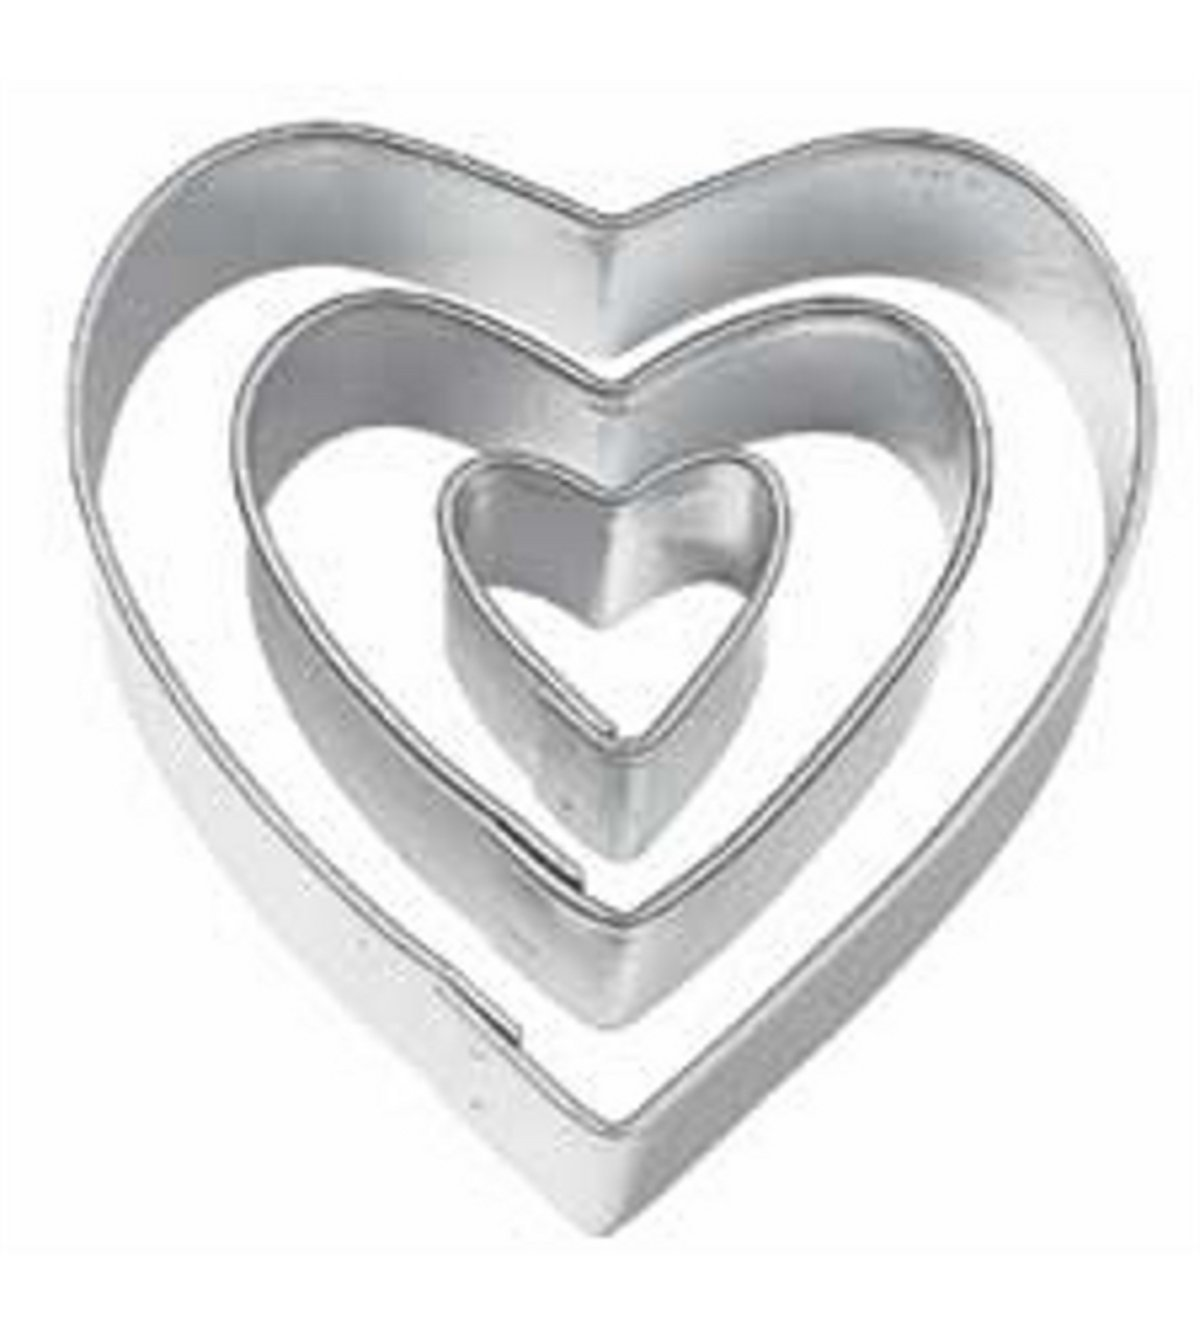 HEART SHAPED COOKIE CUTTER DOLLAR STORE